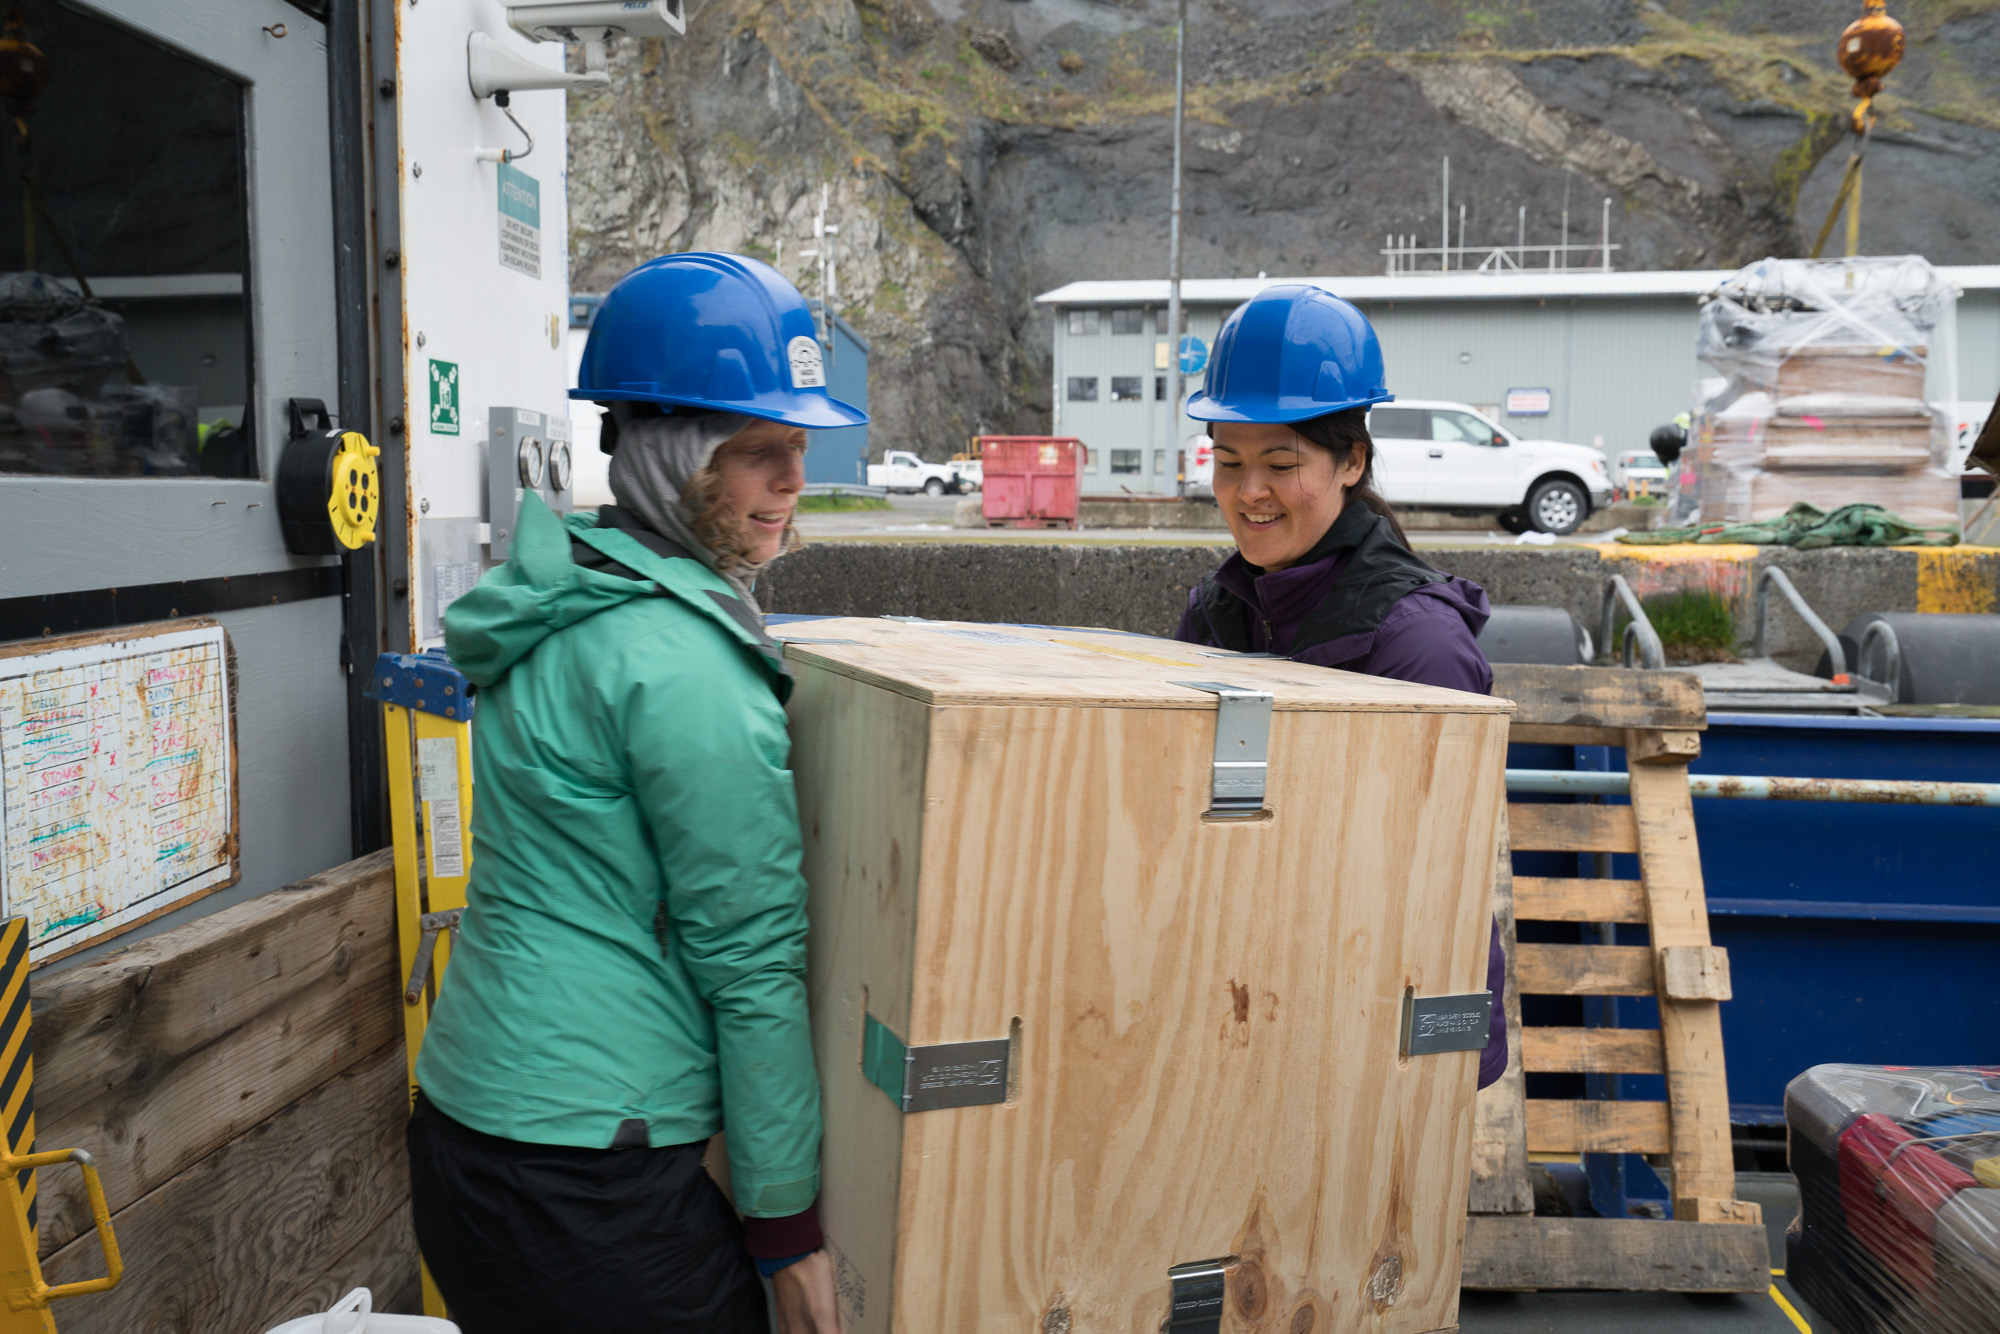 Stephanie and Rachel carry gear into the lab. Photo credit: Andrew McDonnell